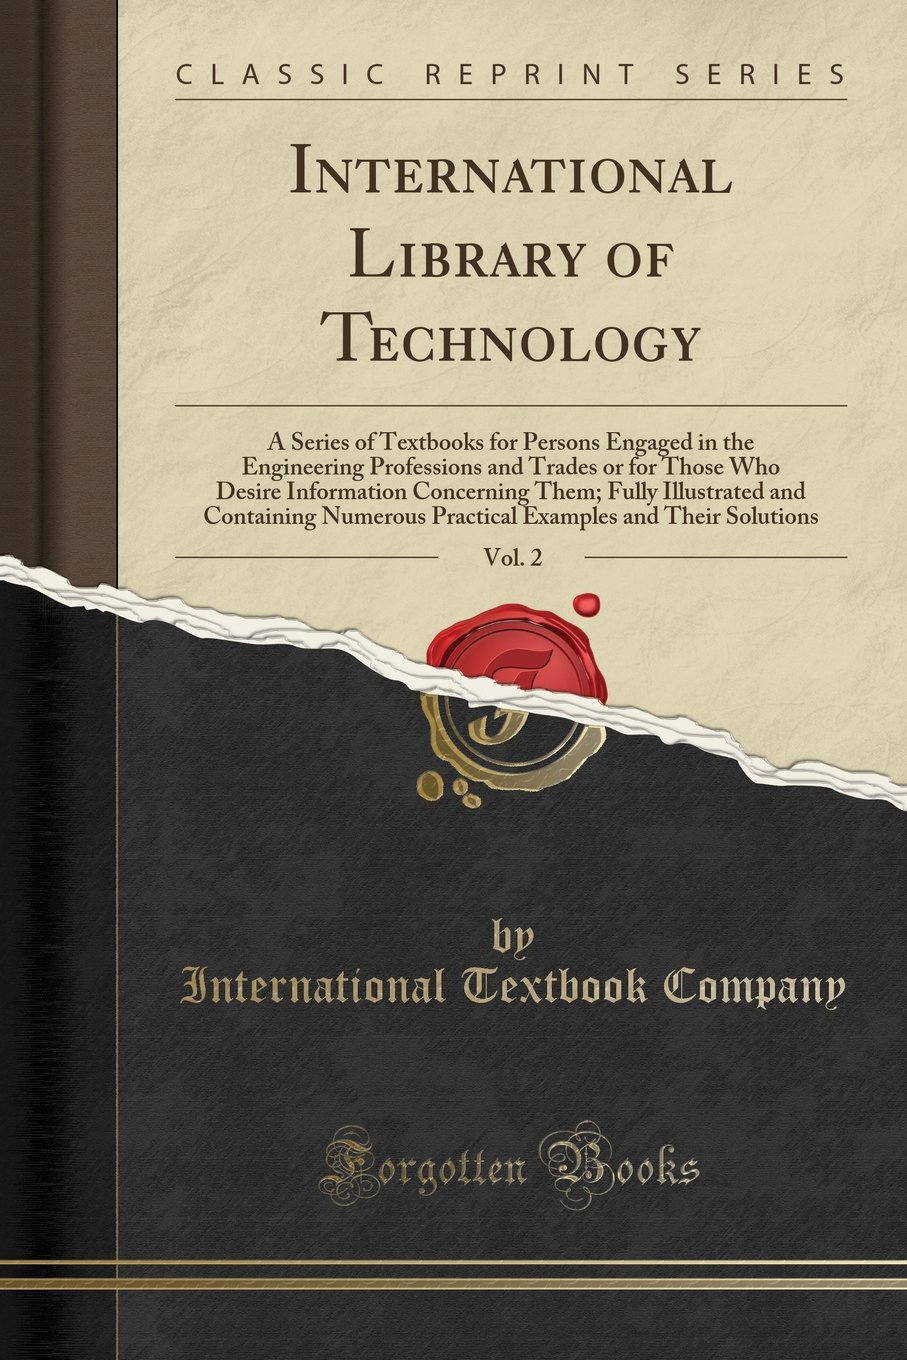 International Library of Technology, Vol. 2: A Series of Textbooks for Persons Engaged in the Engineering Professions and Trades or for Those Who ... Numerous Practical Examples and Their So pdf epub